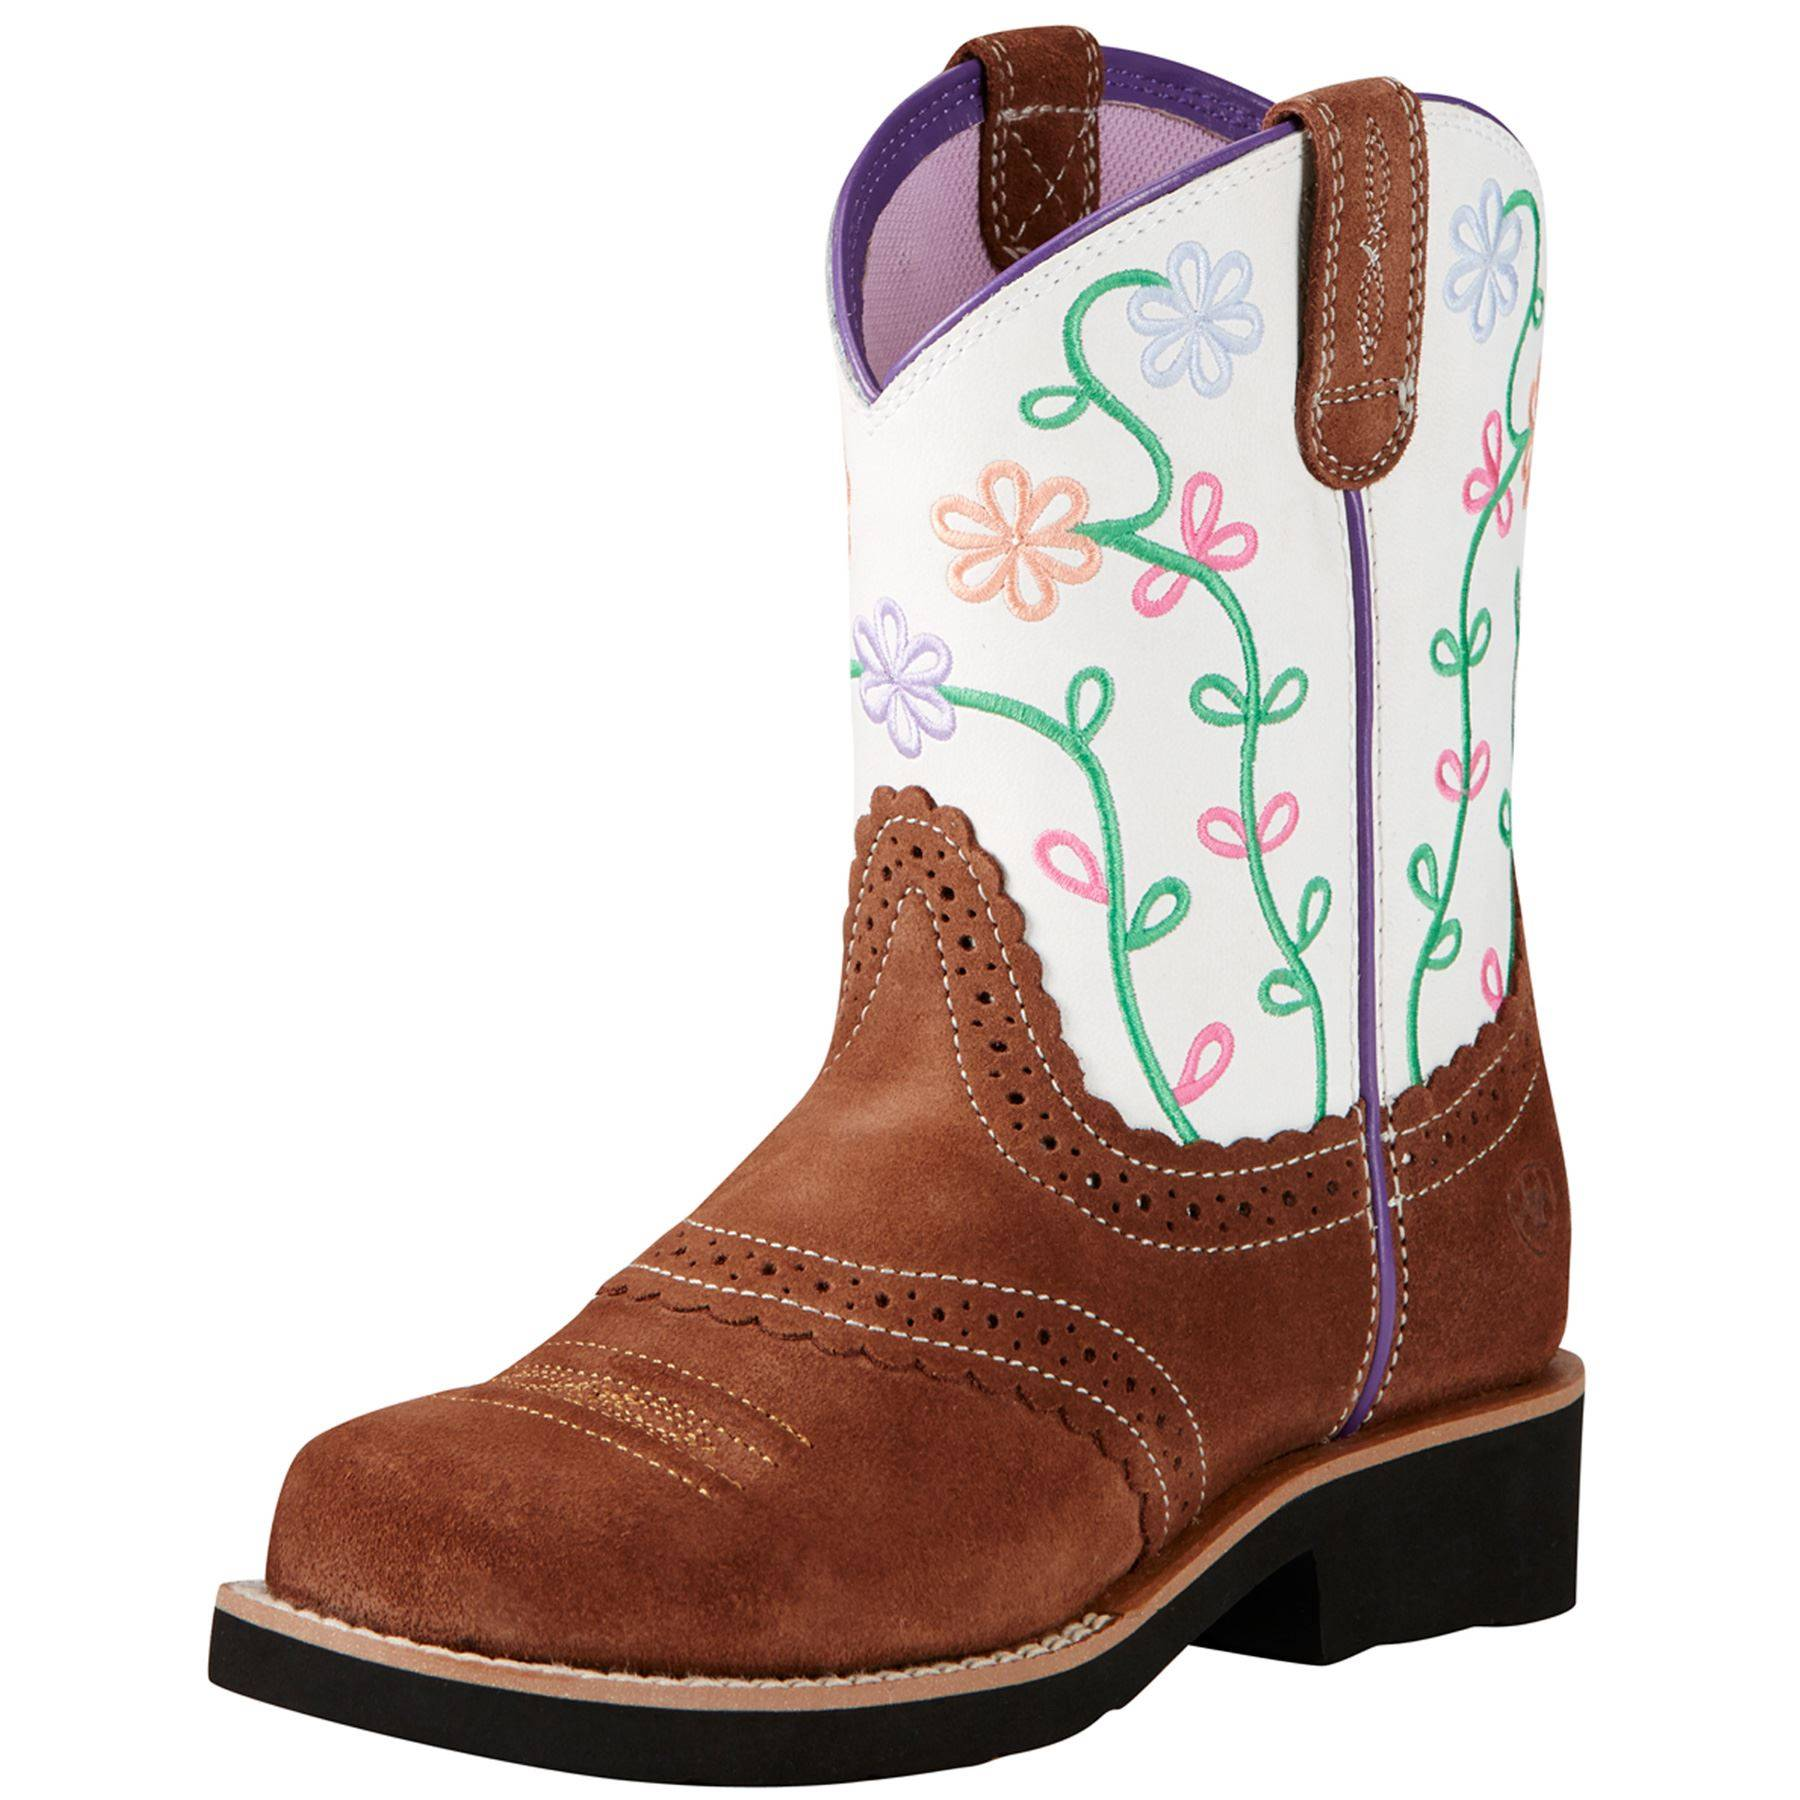 Ariat Kid's Fatbaby Blossom Western Boots